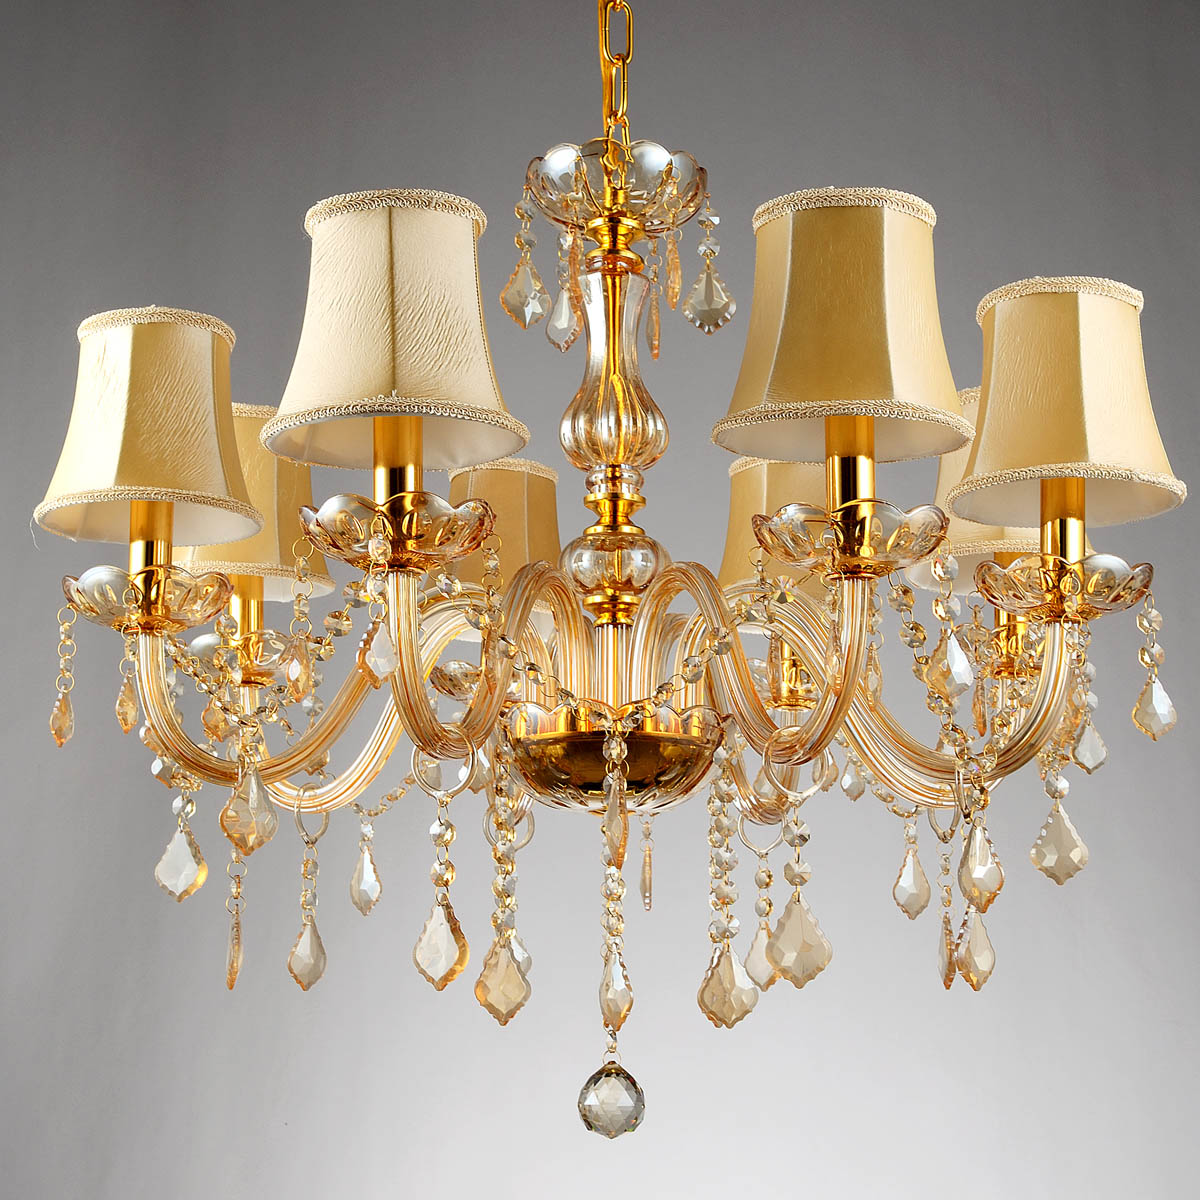 Free Ship 6 8 Arms Fashion Crystal Chandelier Lighting